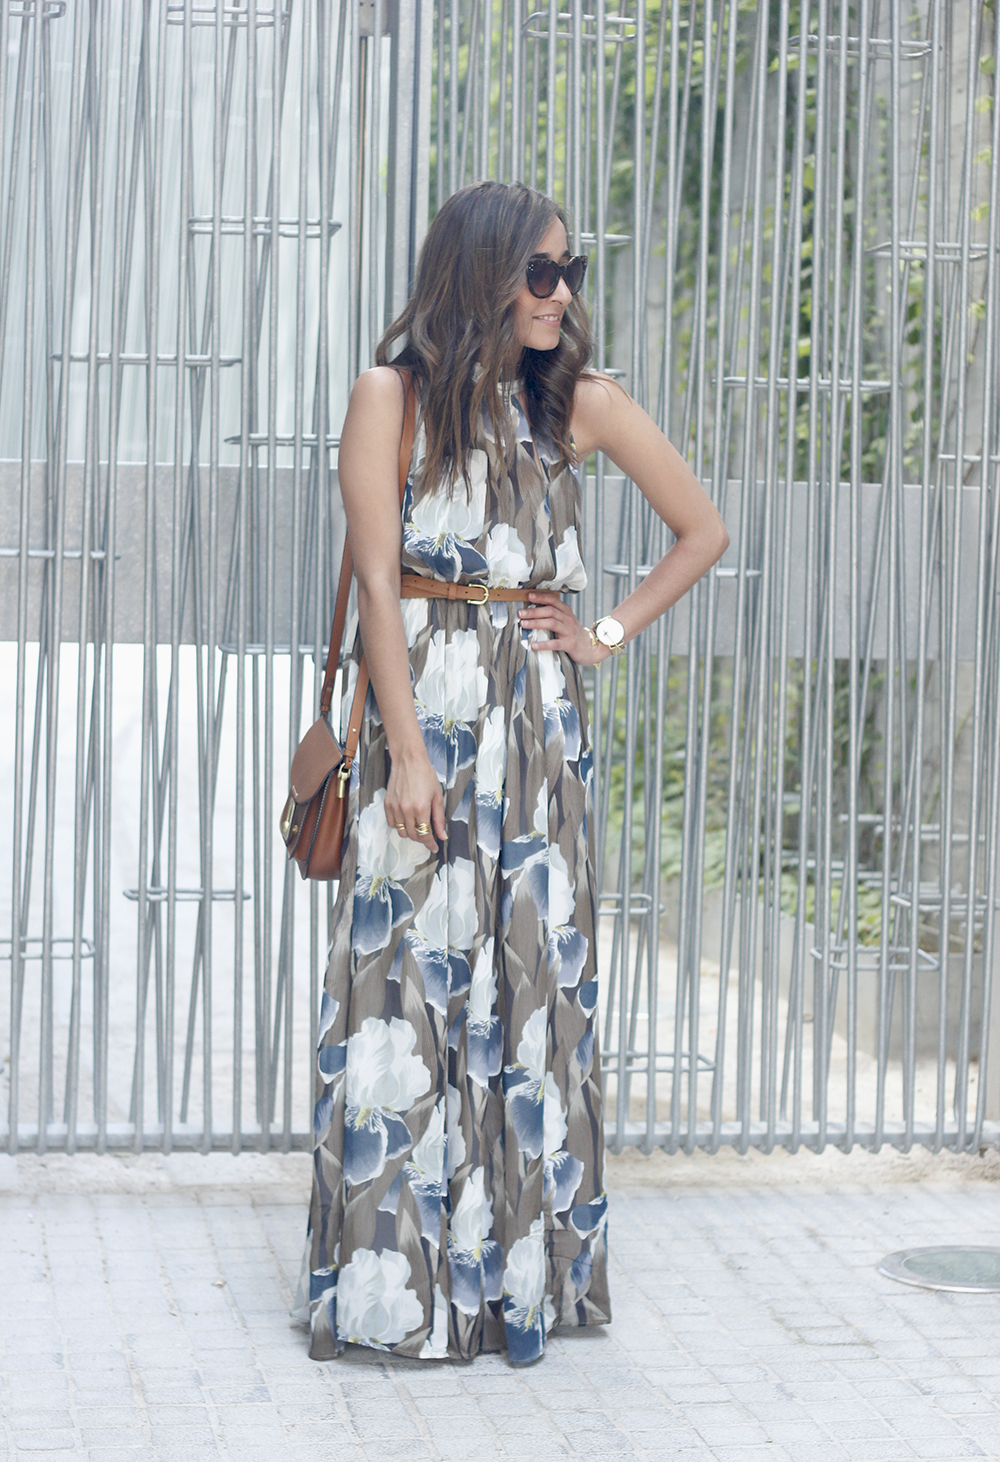 Maxi Dress With Floral Pattern heels summer outfit style05